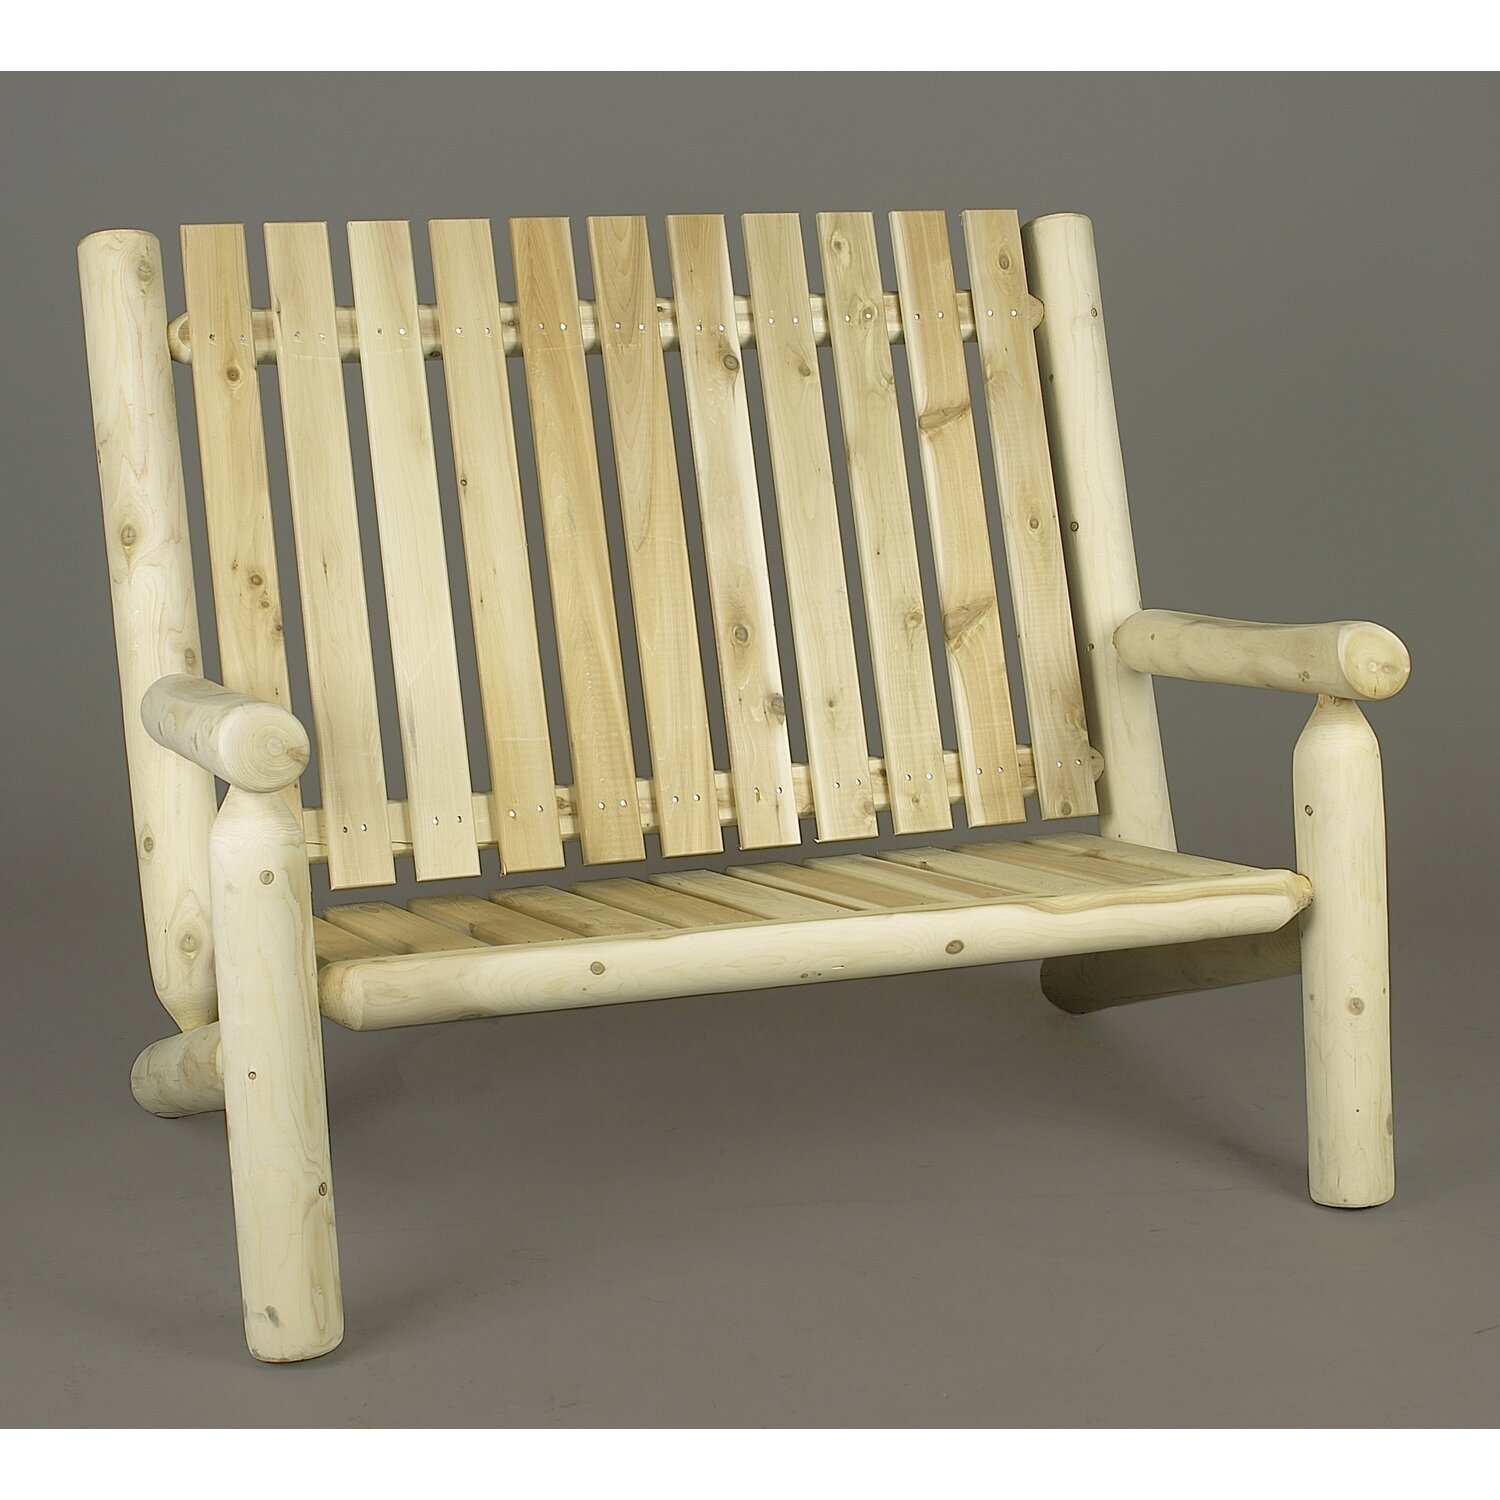 #8F7D3C High Back Wooden Bench Images with 1500x1500 px of Highly Rated High Back Wooden Bench 15001500 picture/photo @ avoidforclosure.info